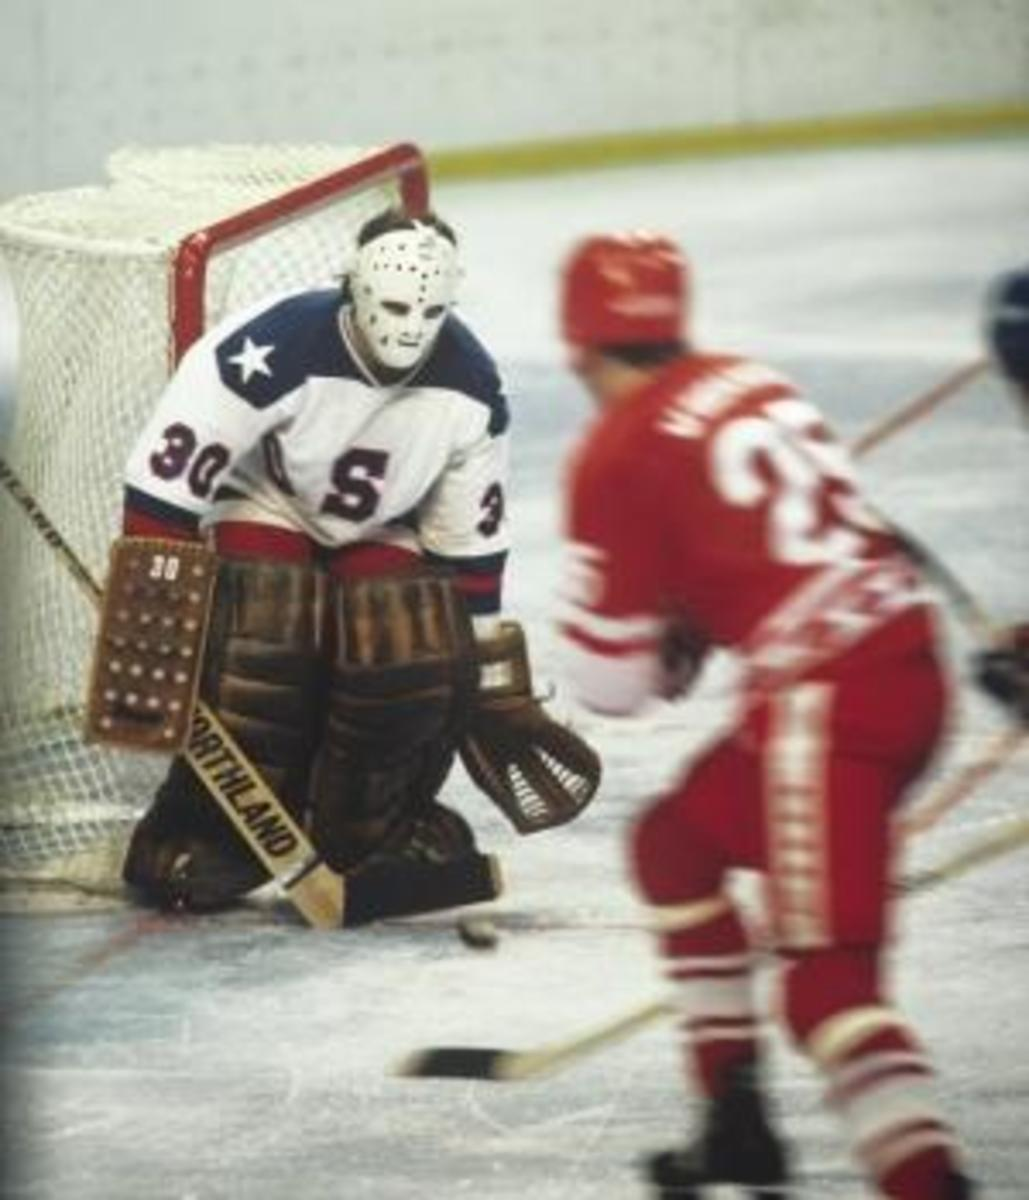 U.S. goaltender Jim Craig blocks a Soviet shot (Credit: John Kelly/Getty Images)